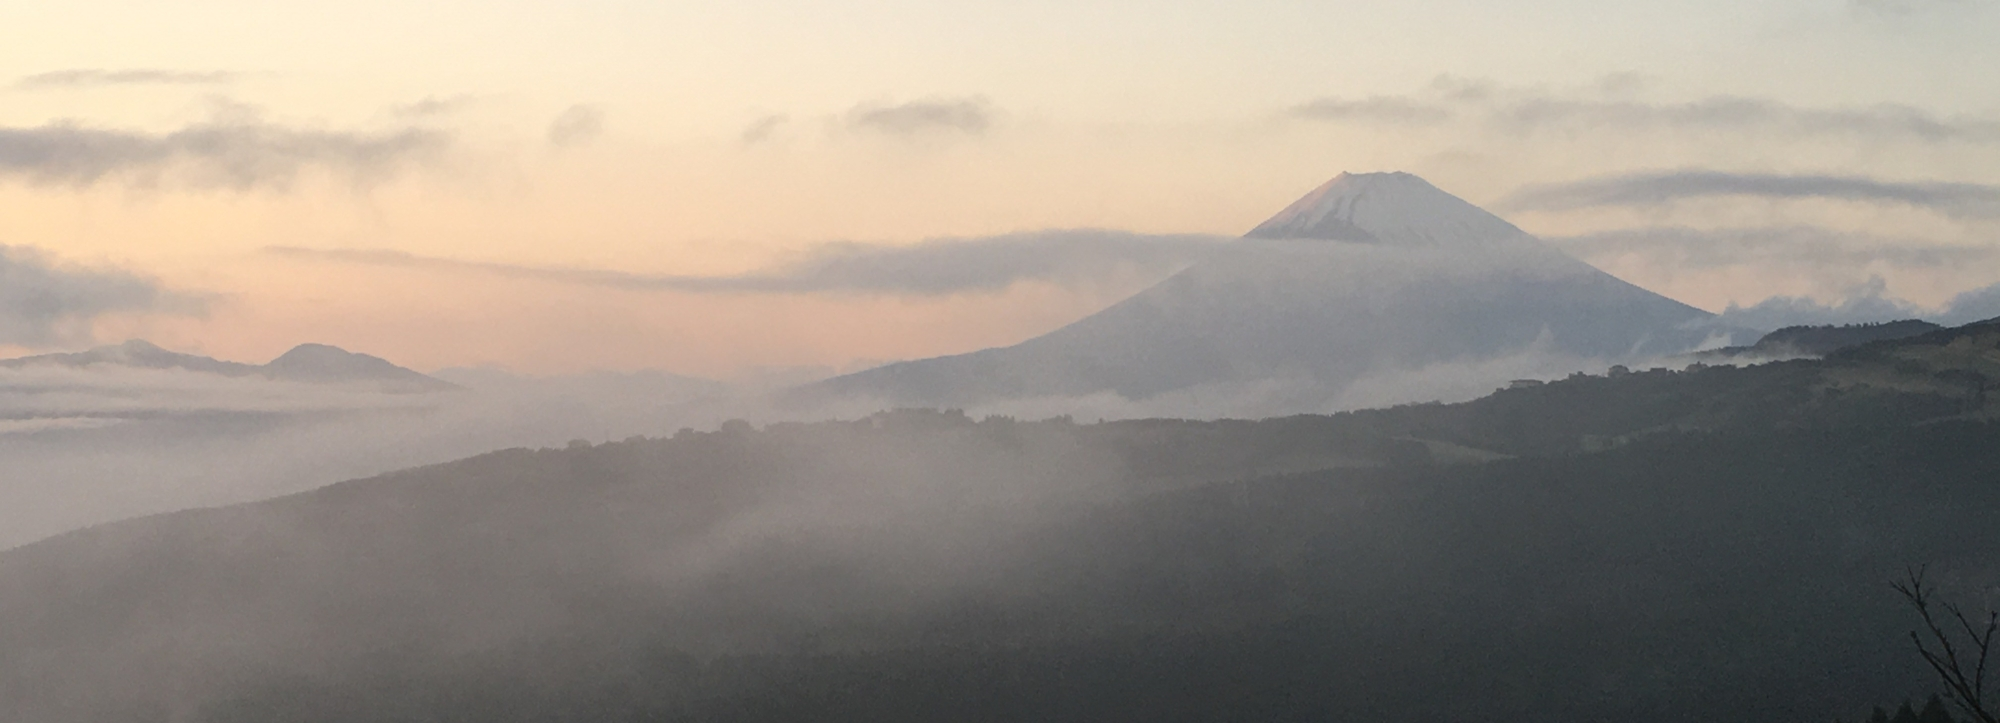 Fuji from Hakone Pass